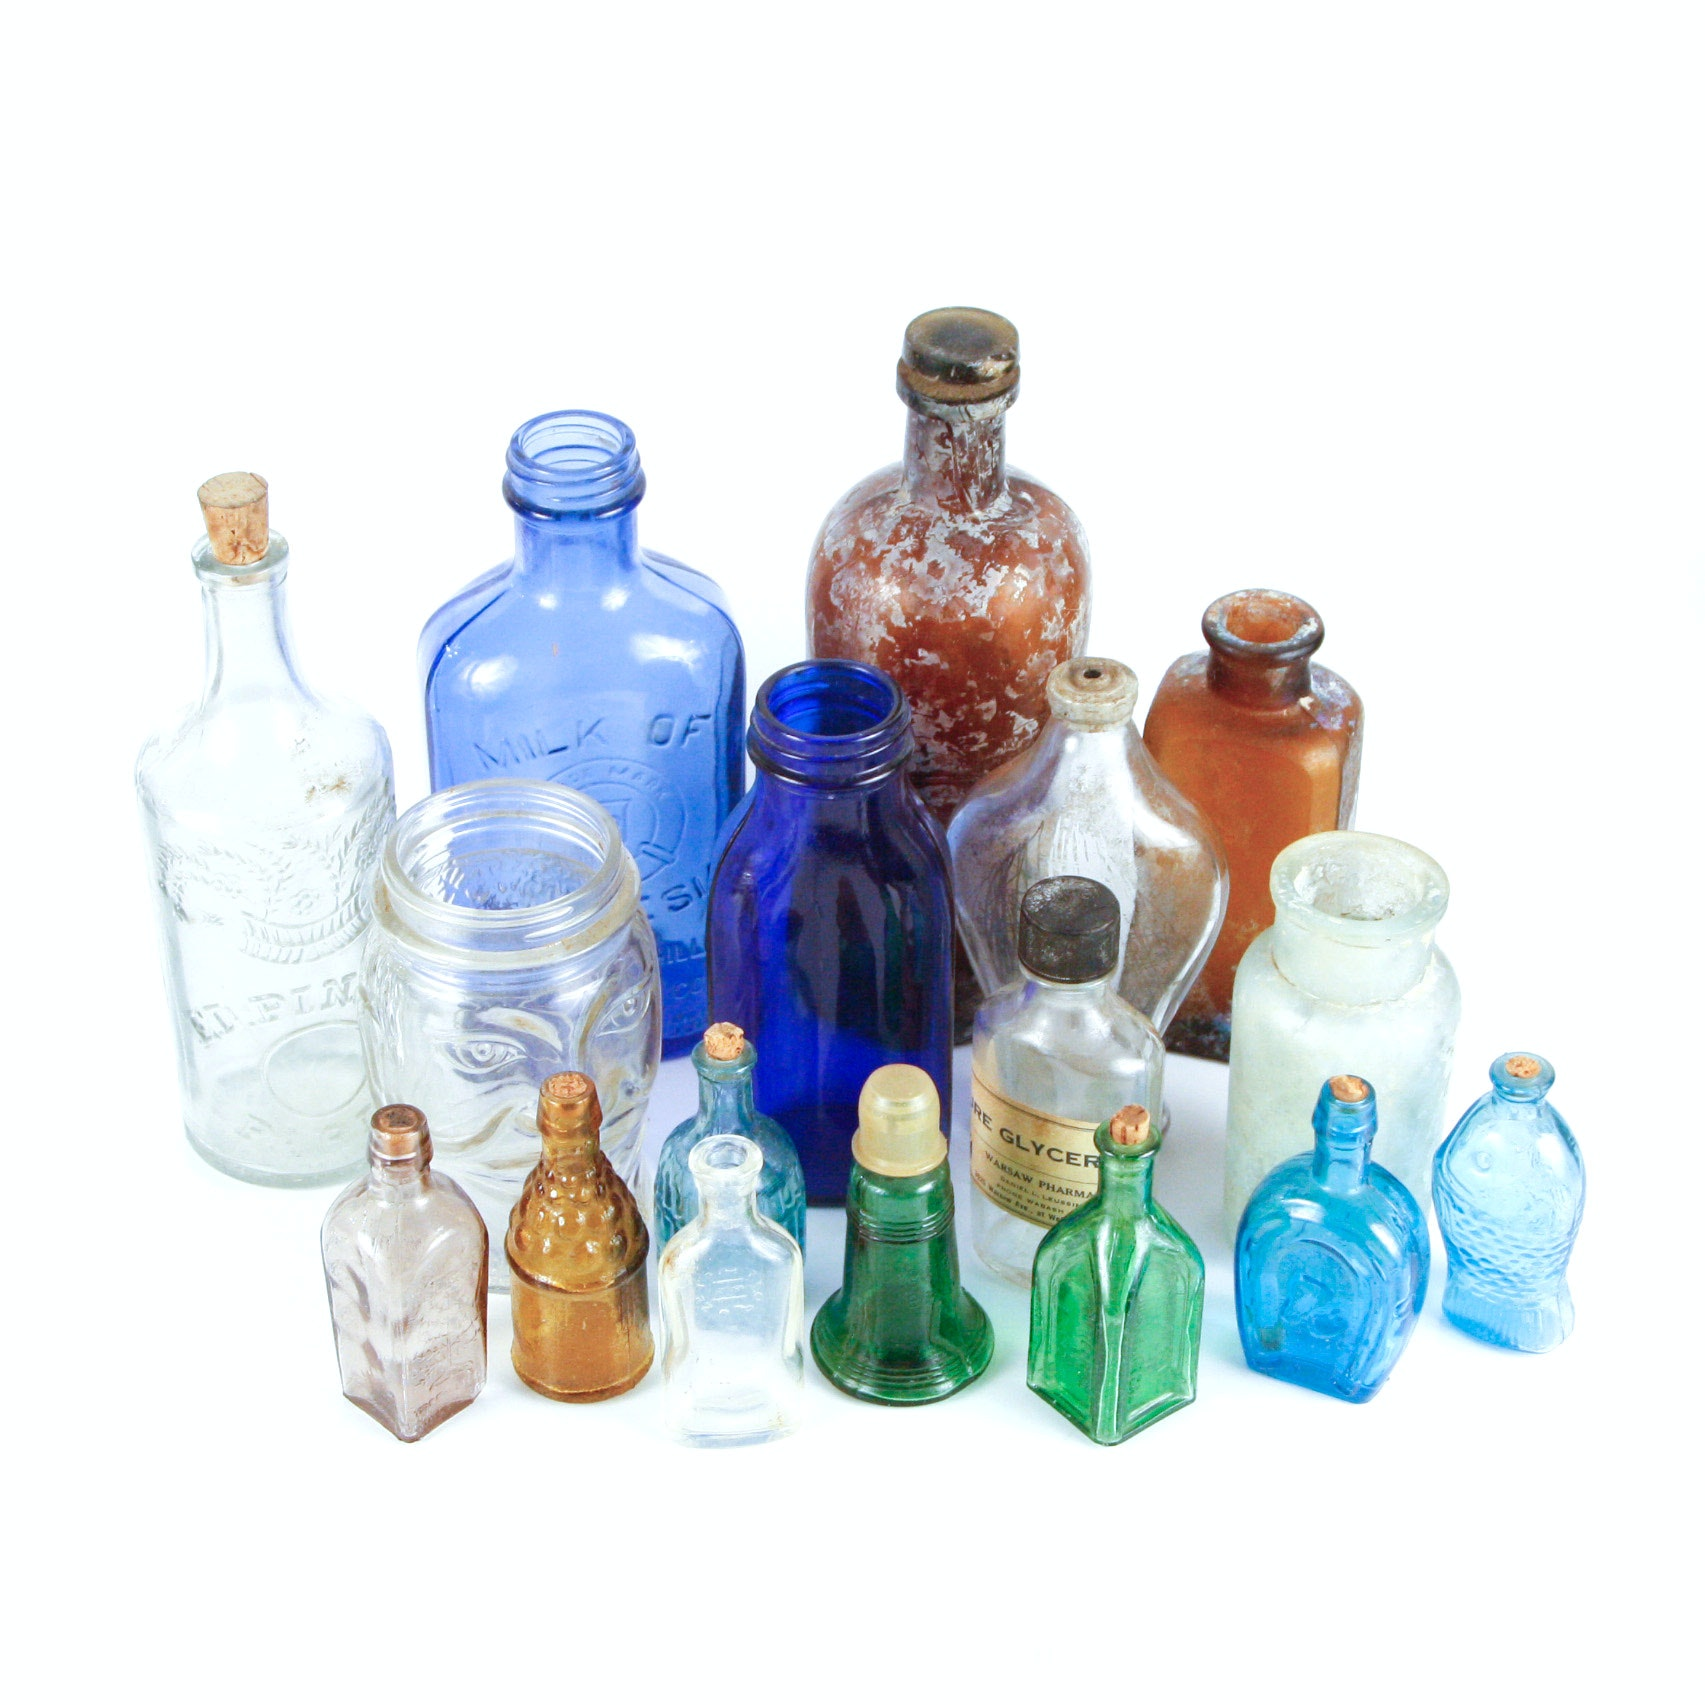 Collection of Assorted Vintage Glass Bottles and Apothecary Jars